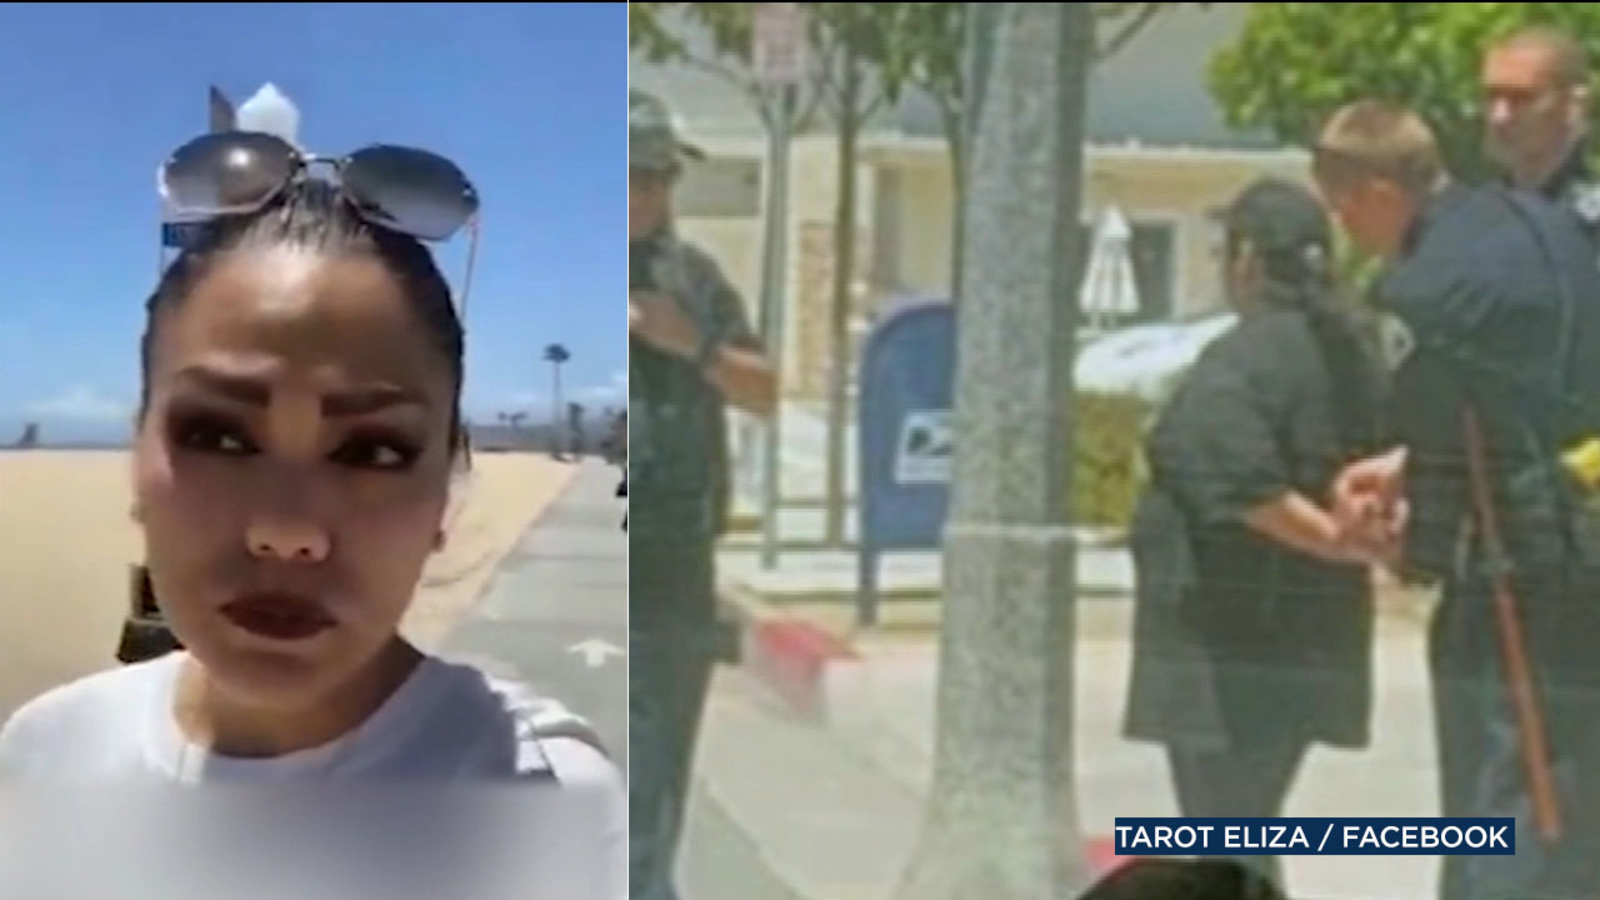 Racist insults hurled at woman as she's livestreaming on Newport Beach